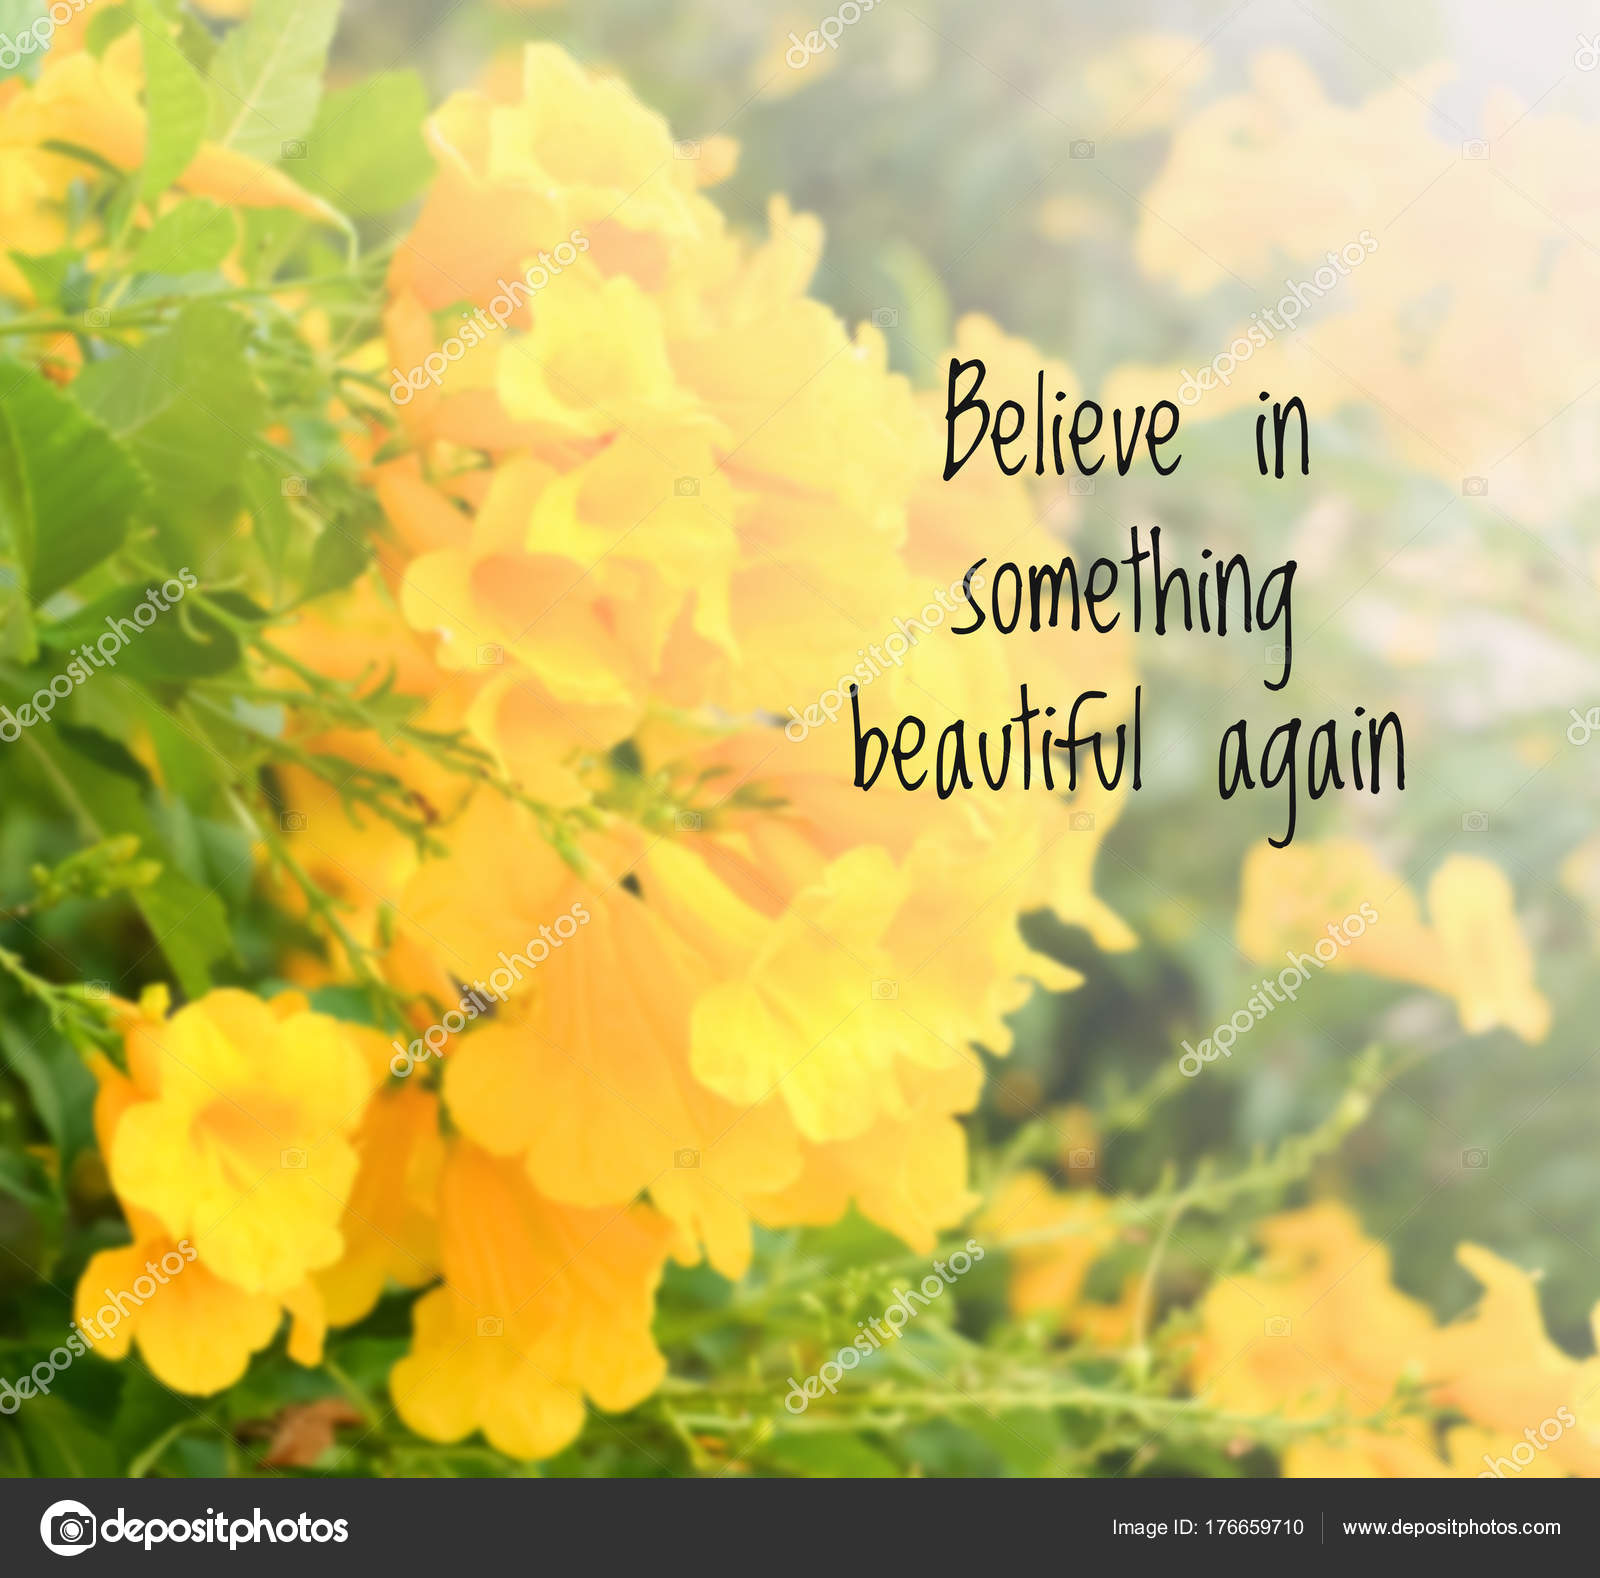 Inspirational Quote Blurred Flowers Background Believe Something